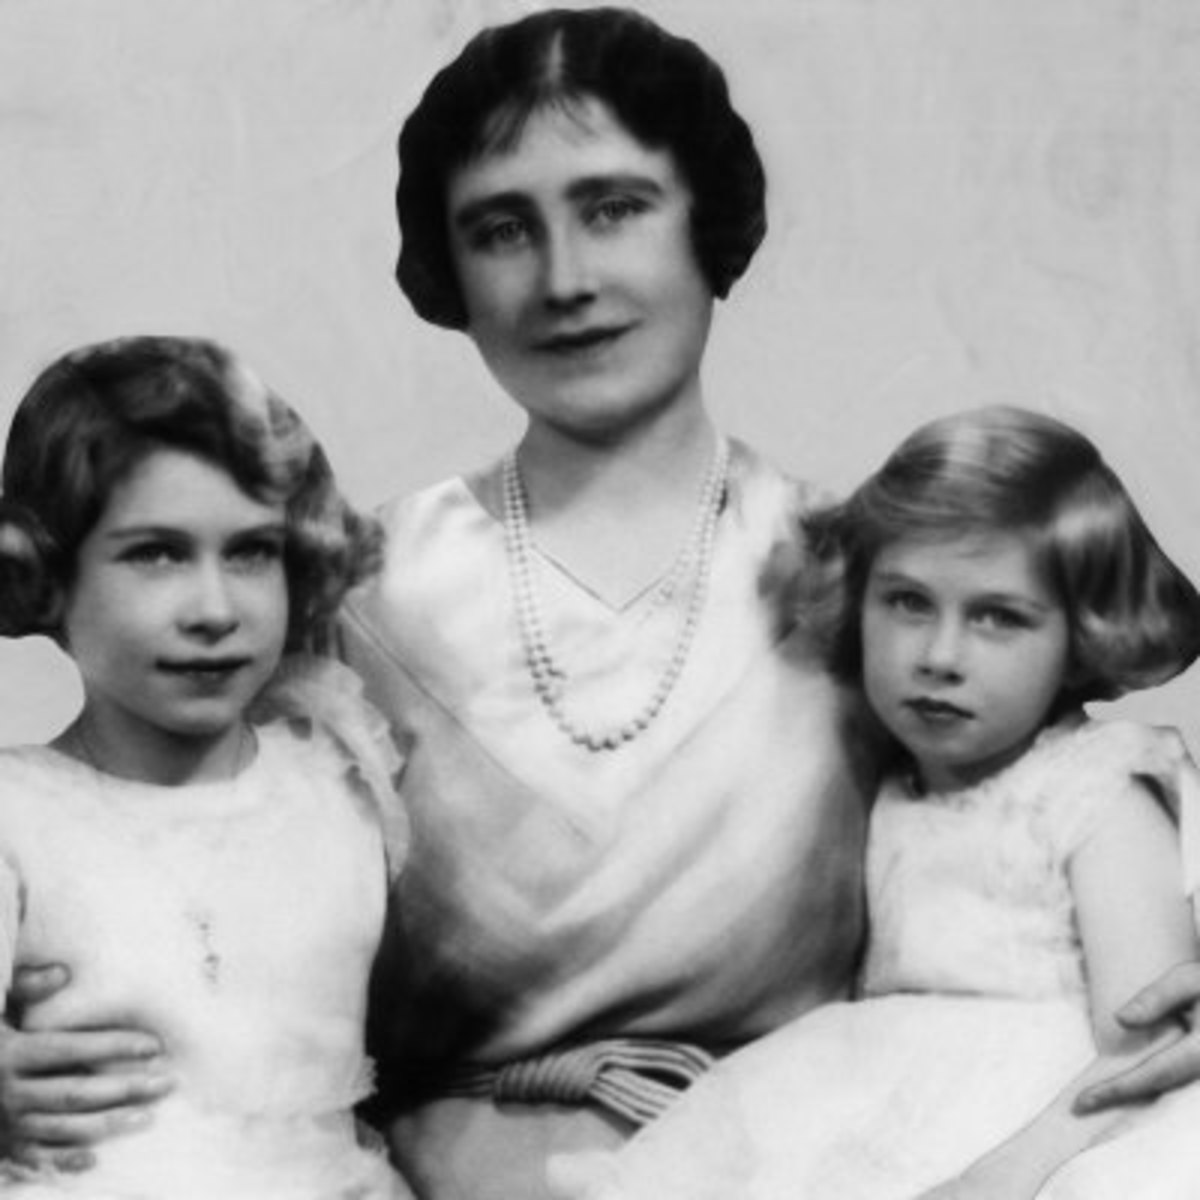 Queen Mother, Princess Elizabeth (future Queen), and Princes Margaret courtesy of allposters.com